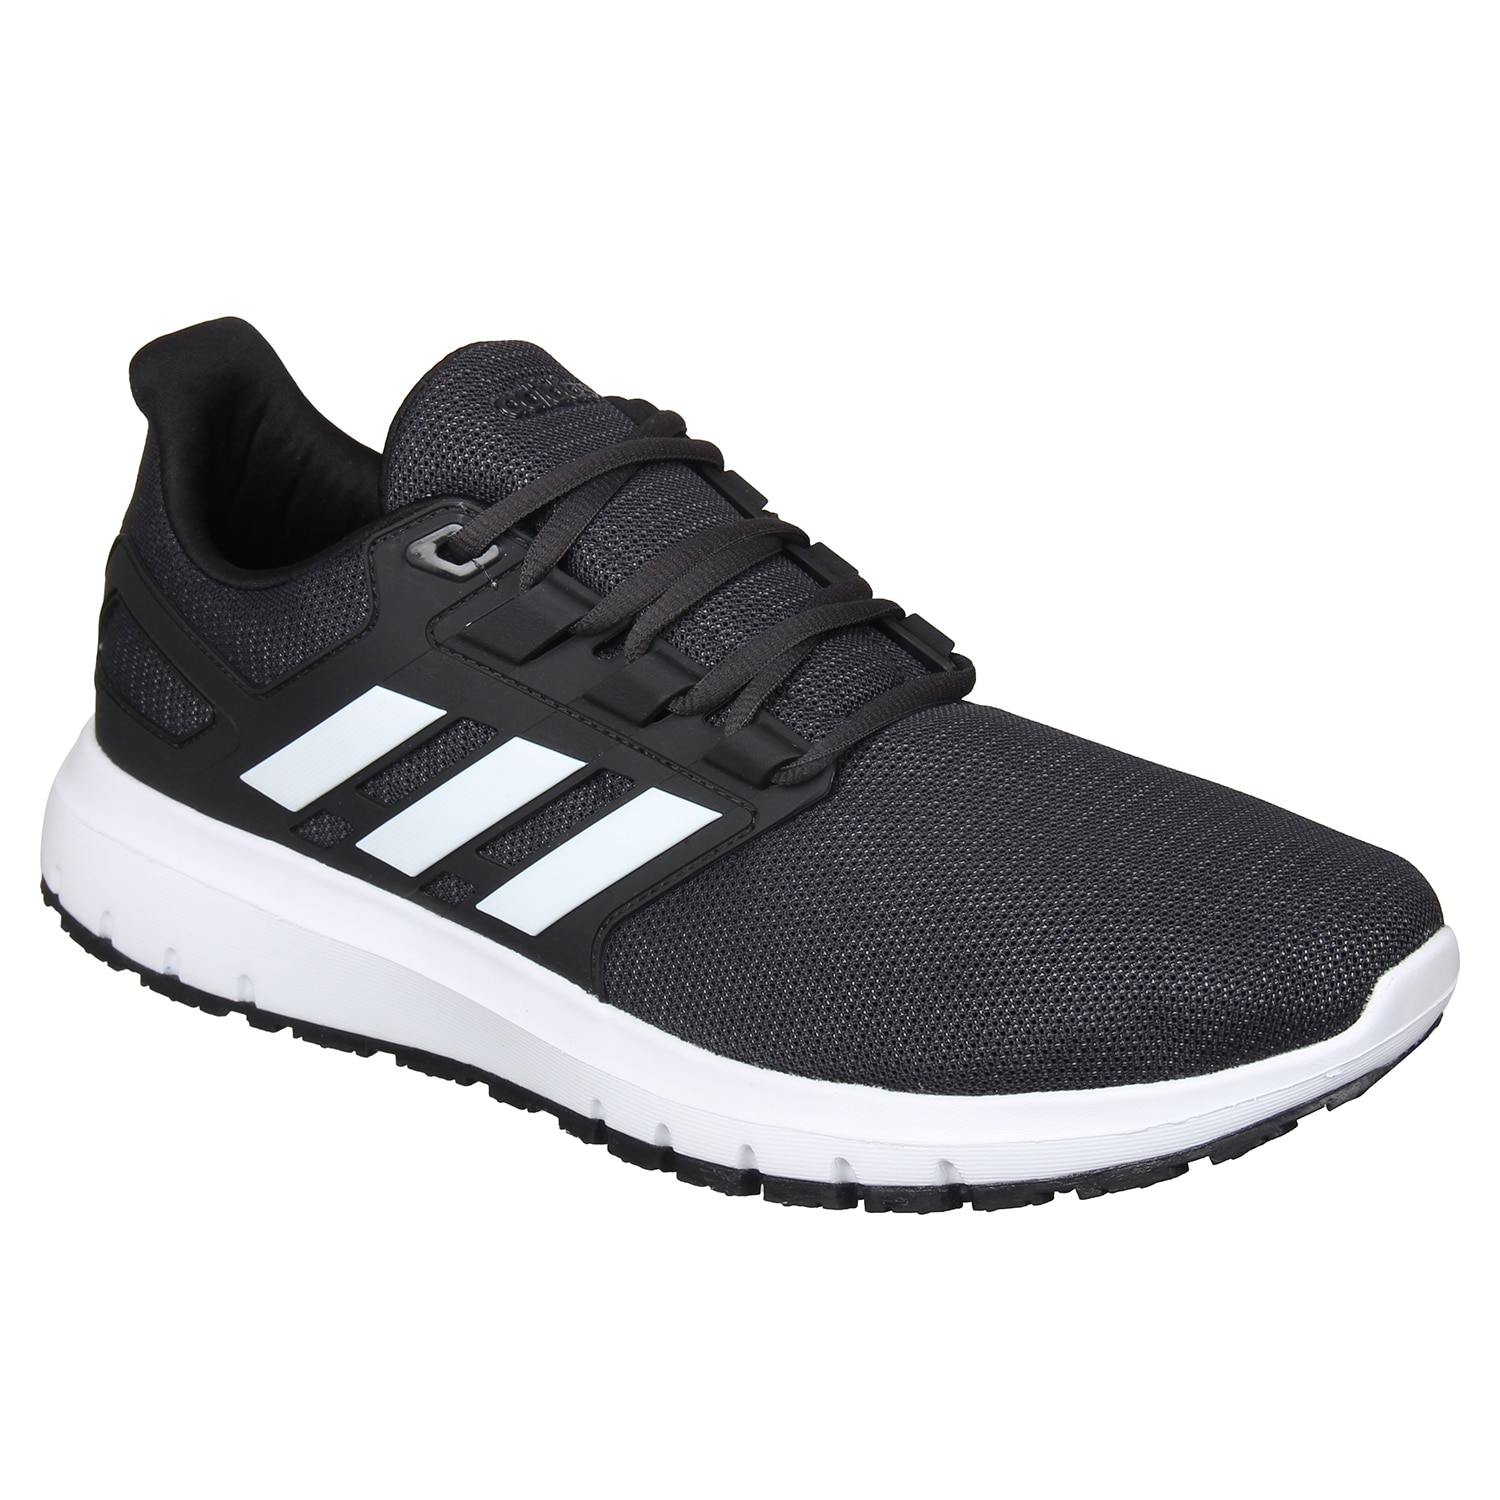 4cdc10a0239 Adidas Energy Cloud 2 White Running Shoes for Men online in India at ...